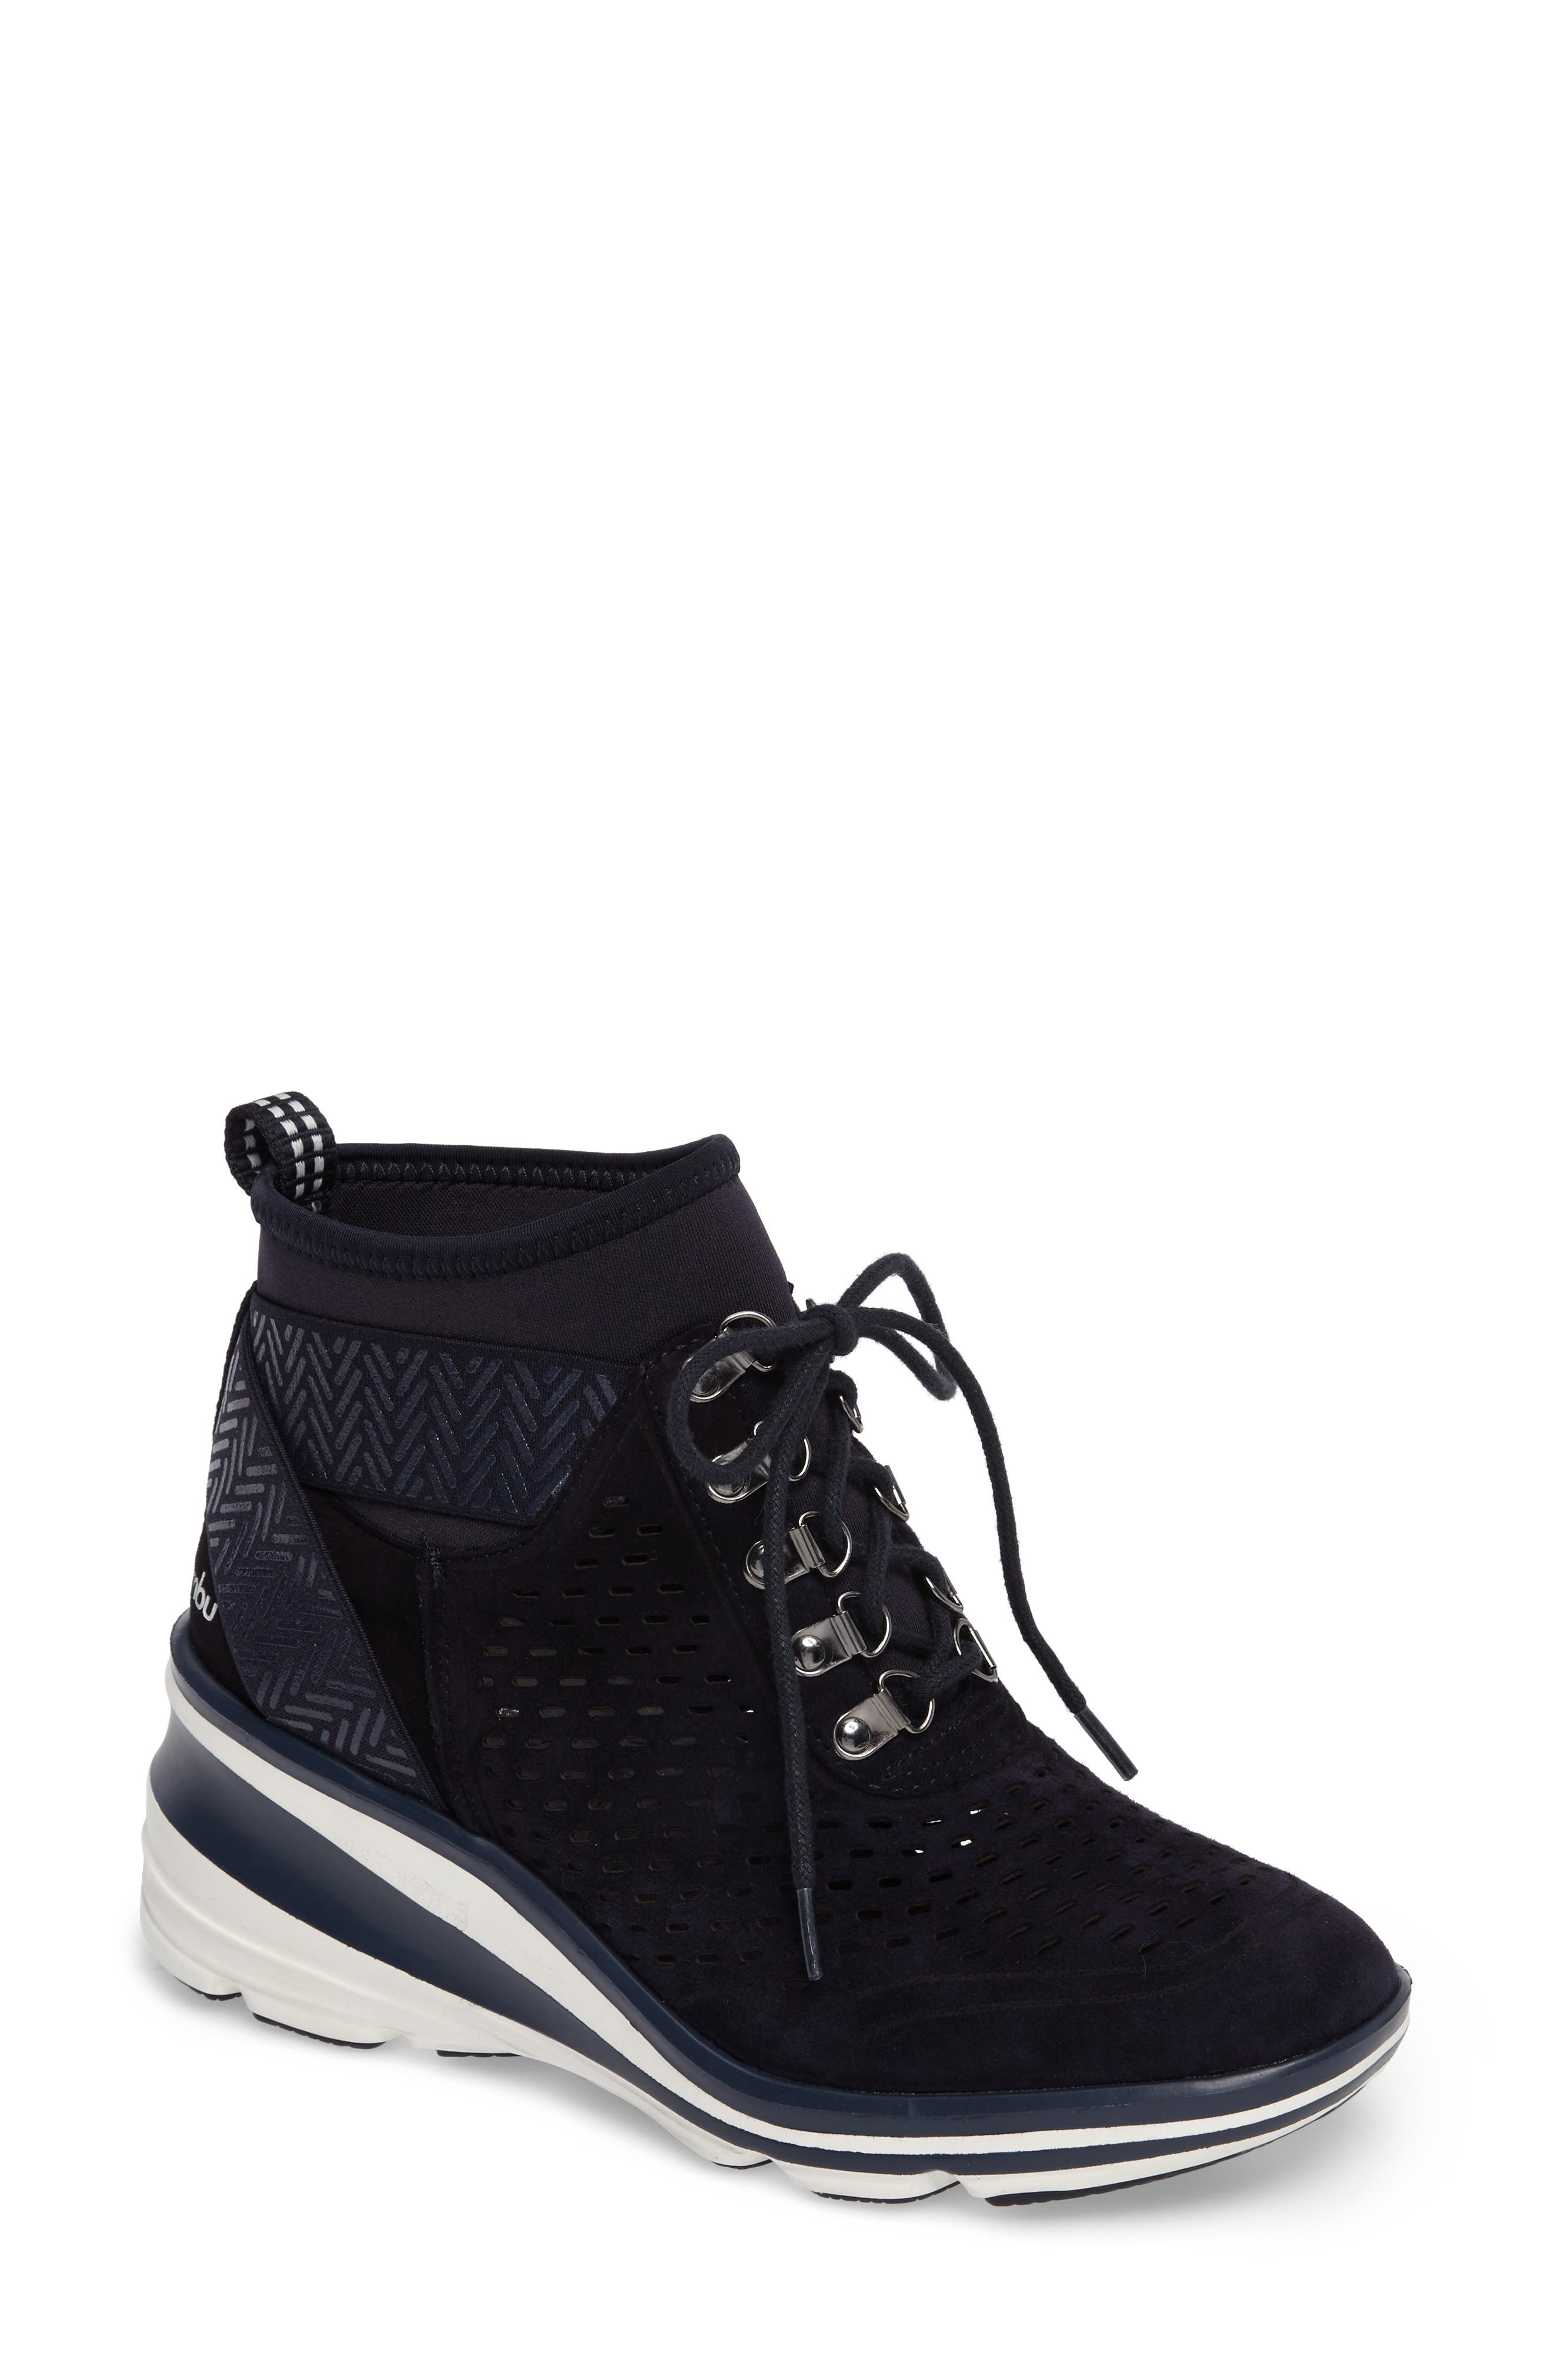 Jambu Offbeat Perforated Wedge Sneaker (Women)